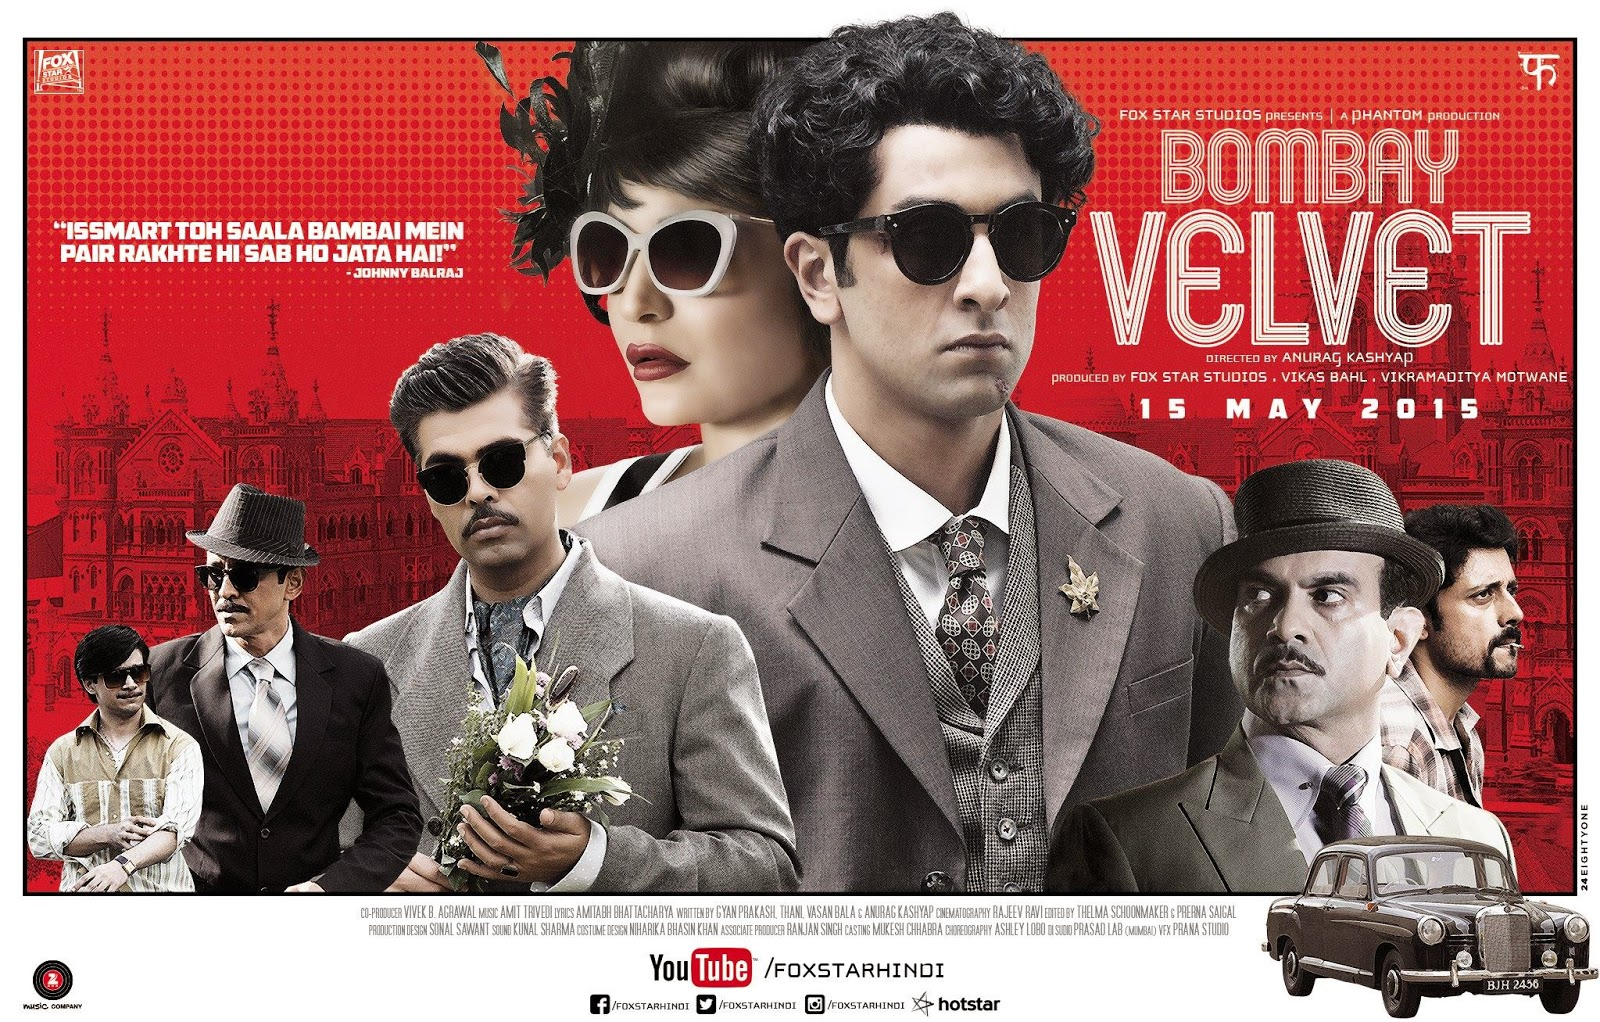 ‪‎New Brand poster of Bombay Velvet‬ ft.‎Ranbir & ‎Anushka in a Classic Pose